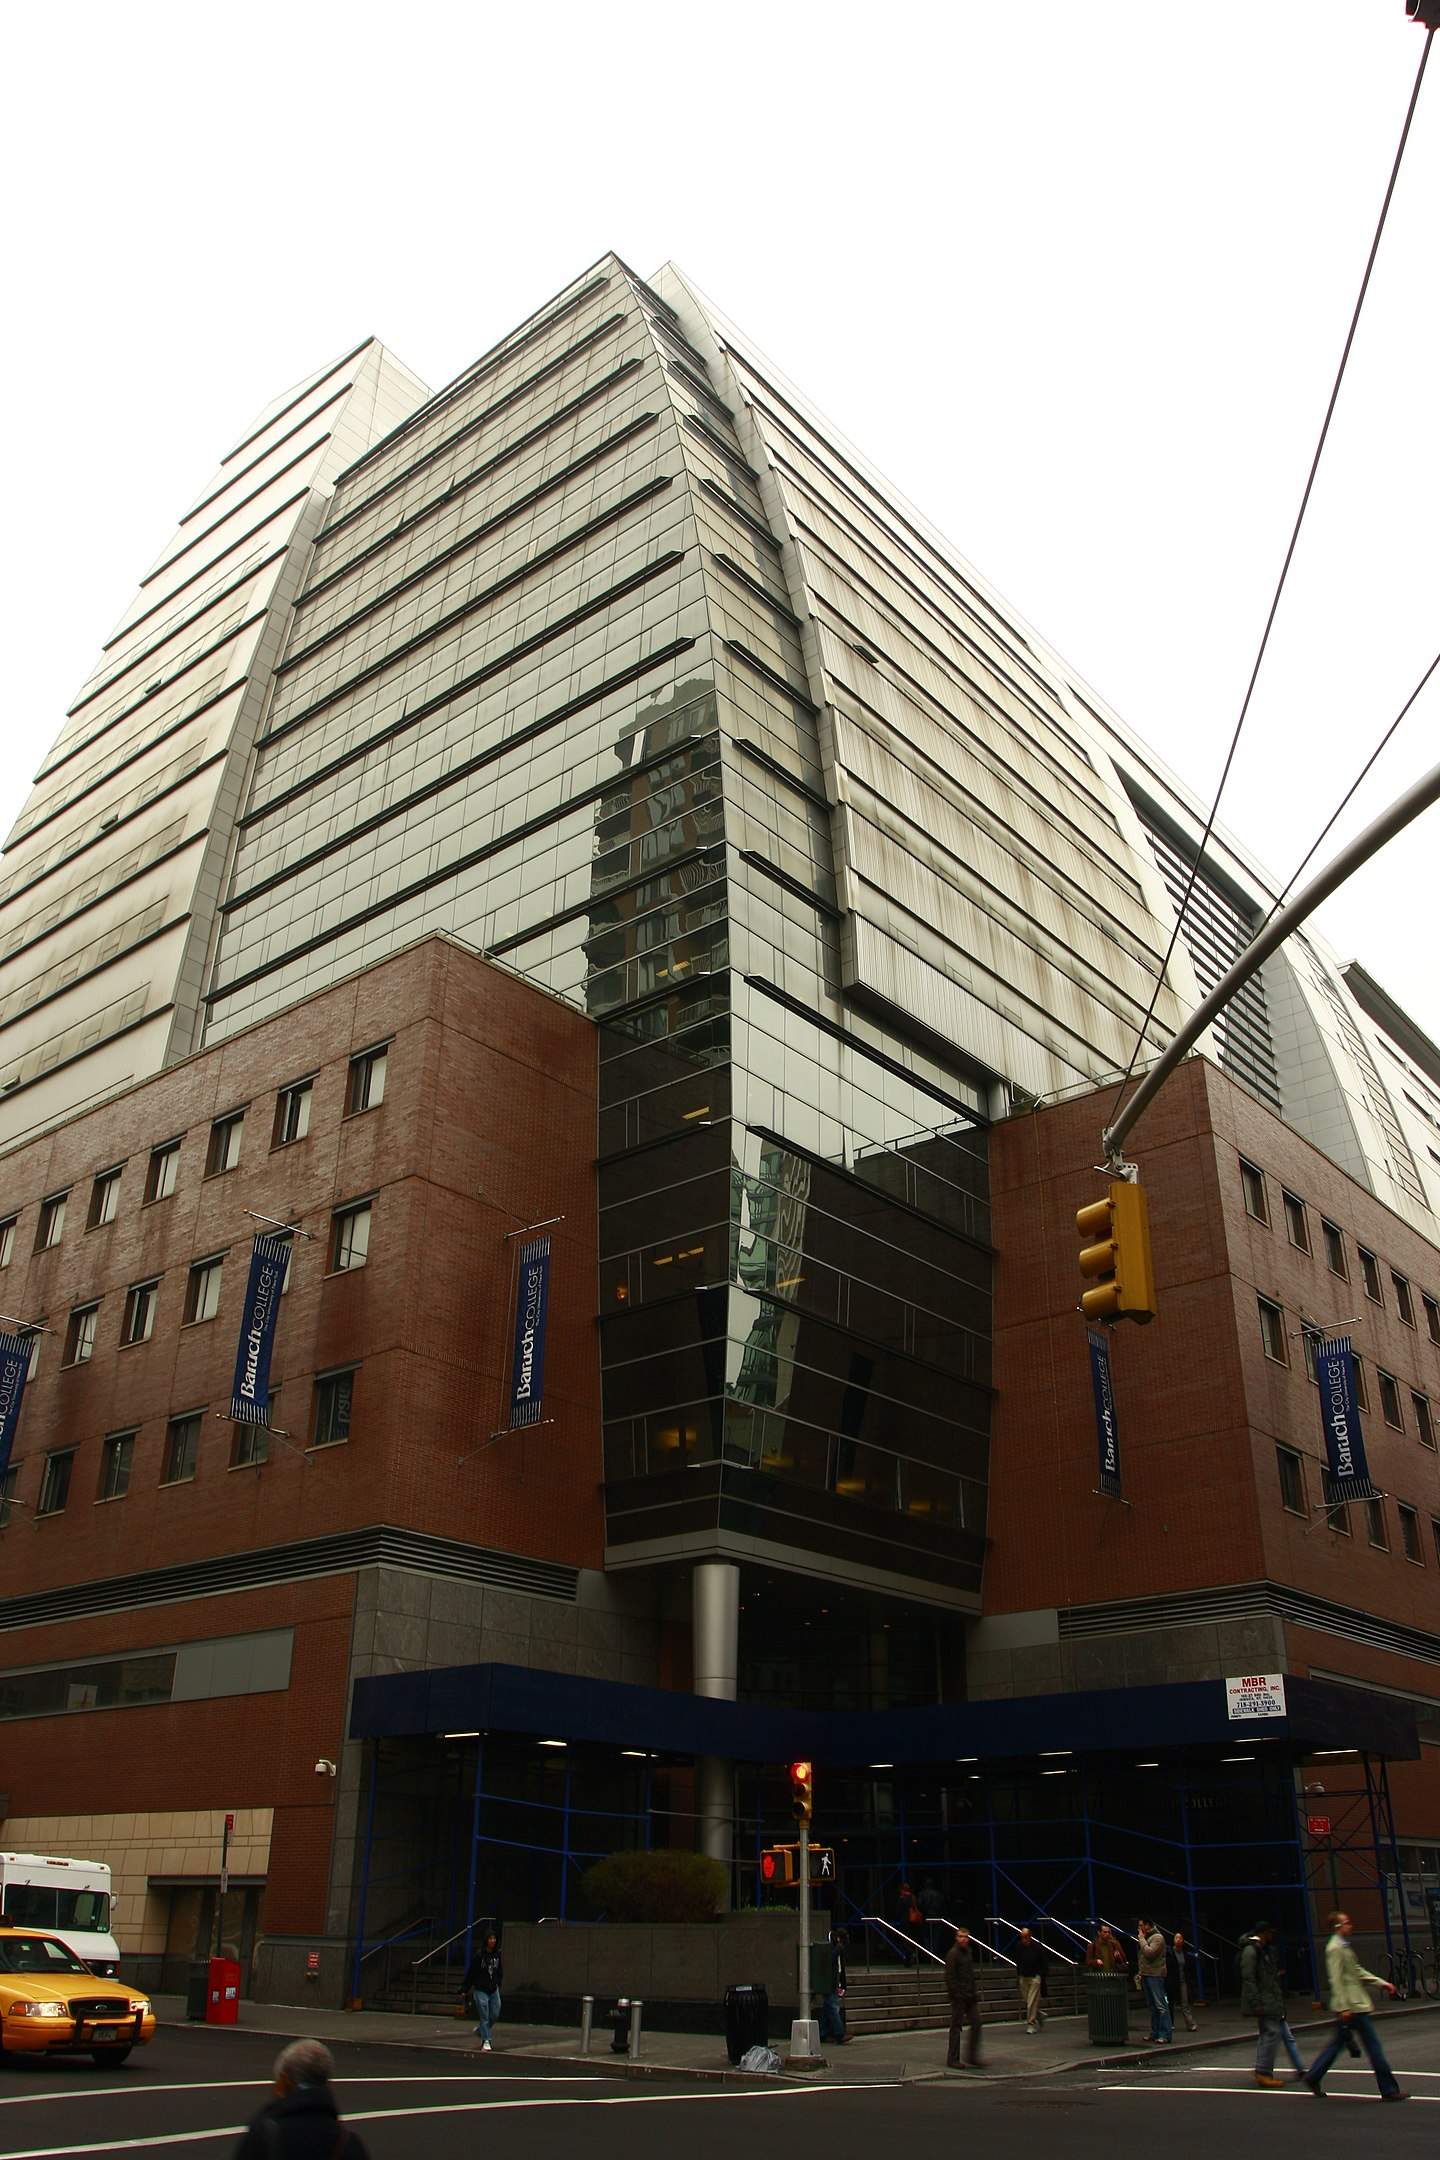 Most_Affordable_Colleges_Universities_CUNY_Bernard_M_Baruch_College